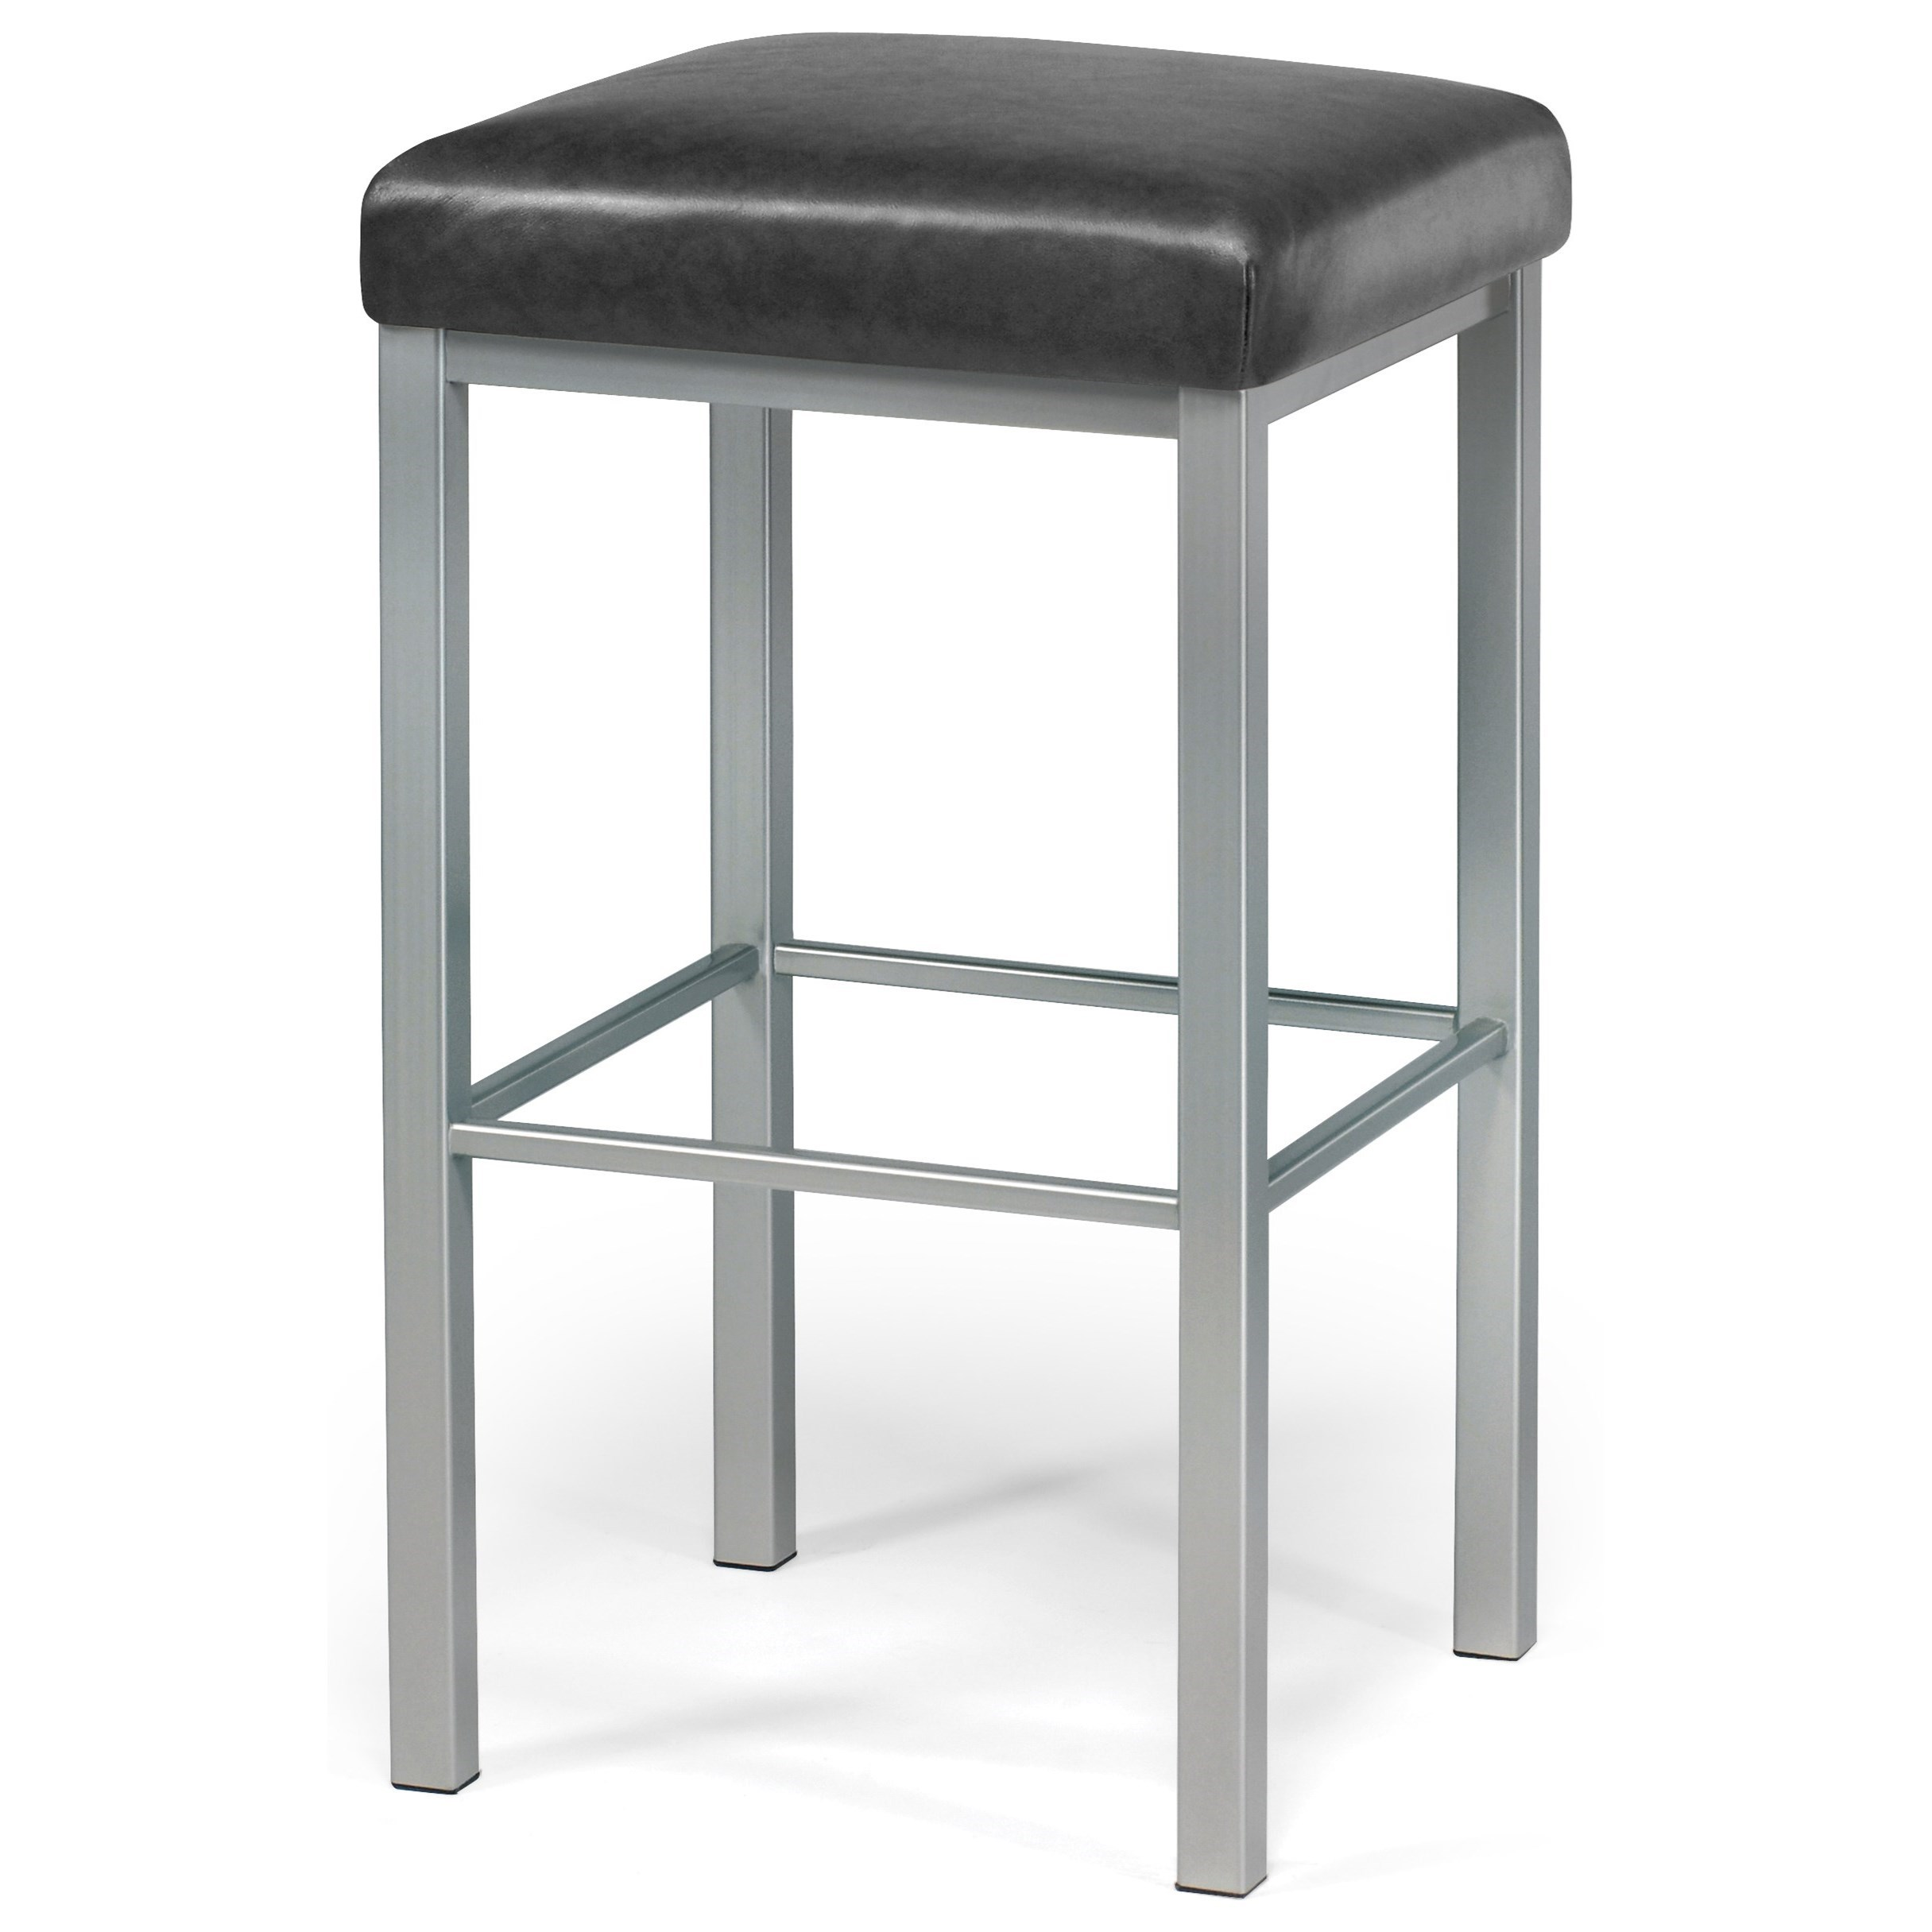 Trica Contemporary Bar Stools Day Bar Stool - Item Number: Day